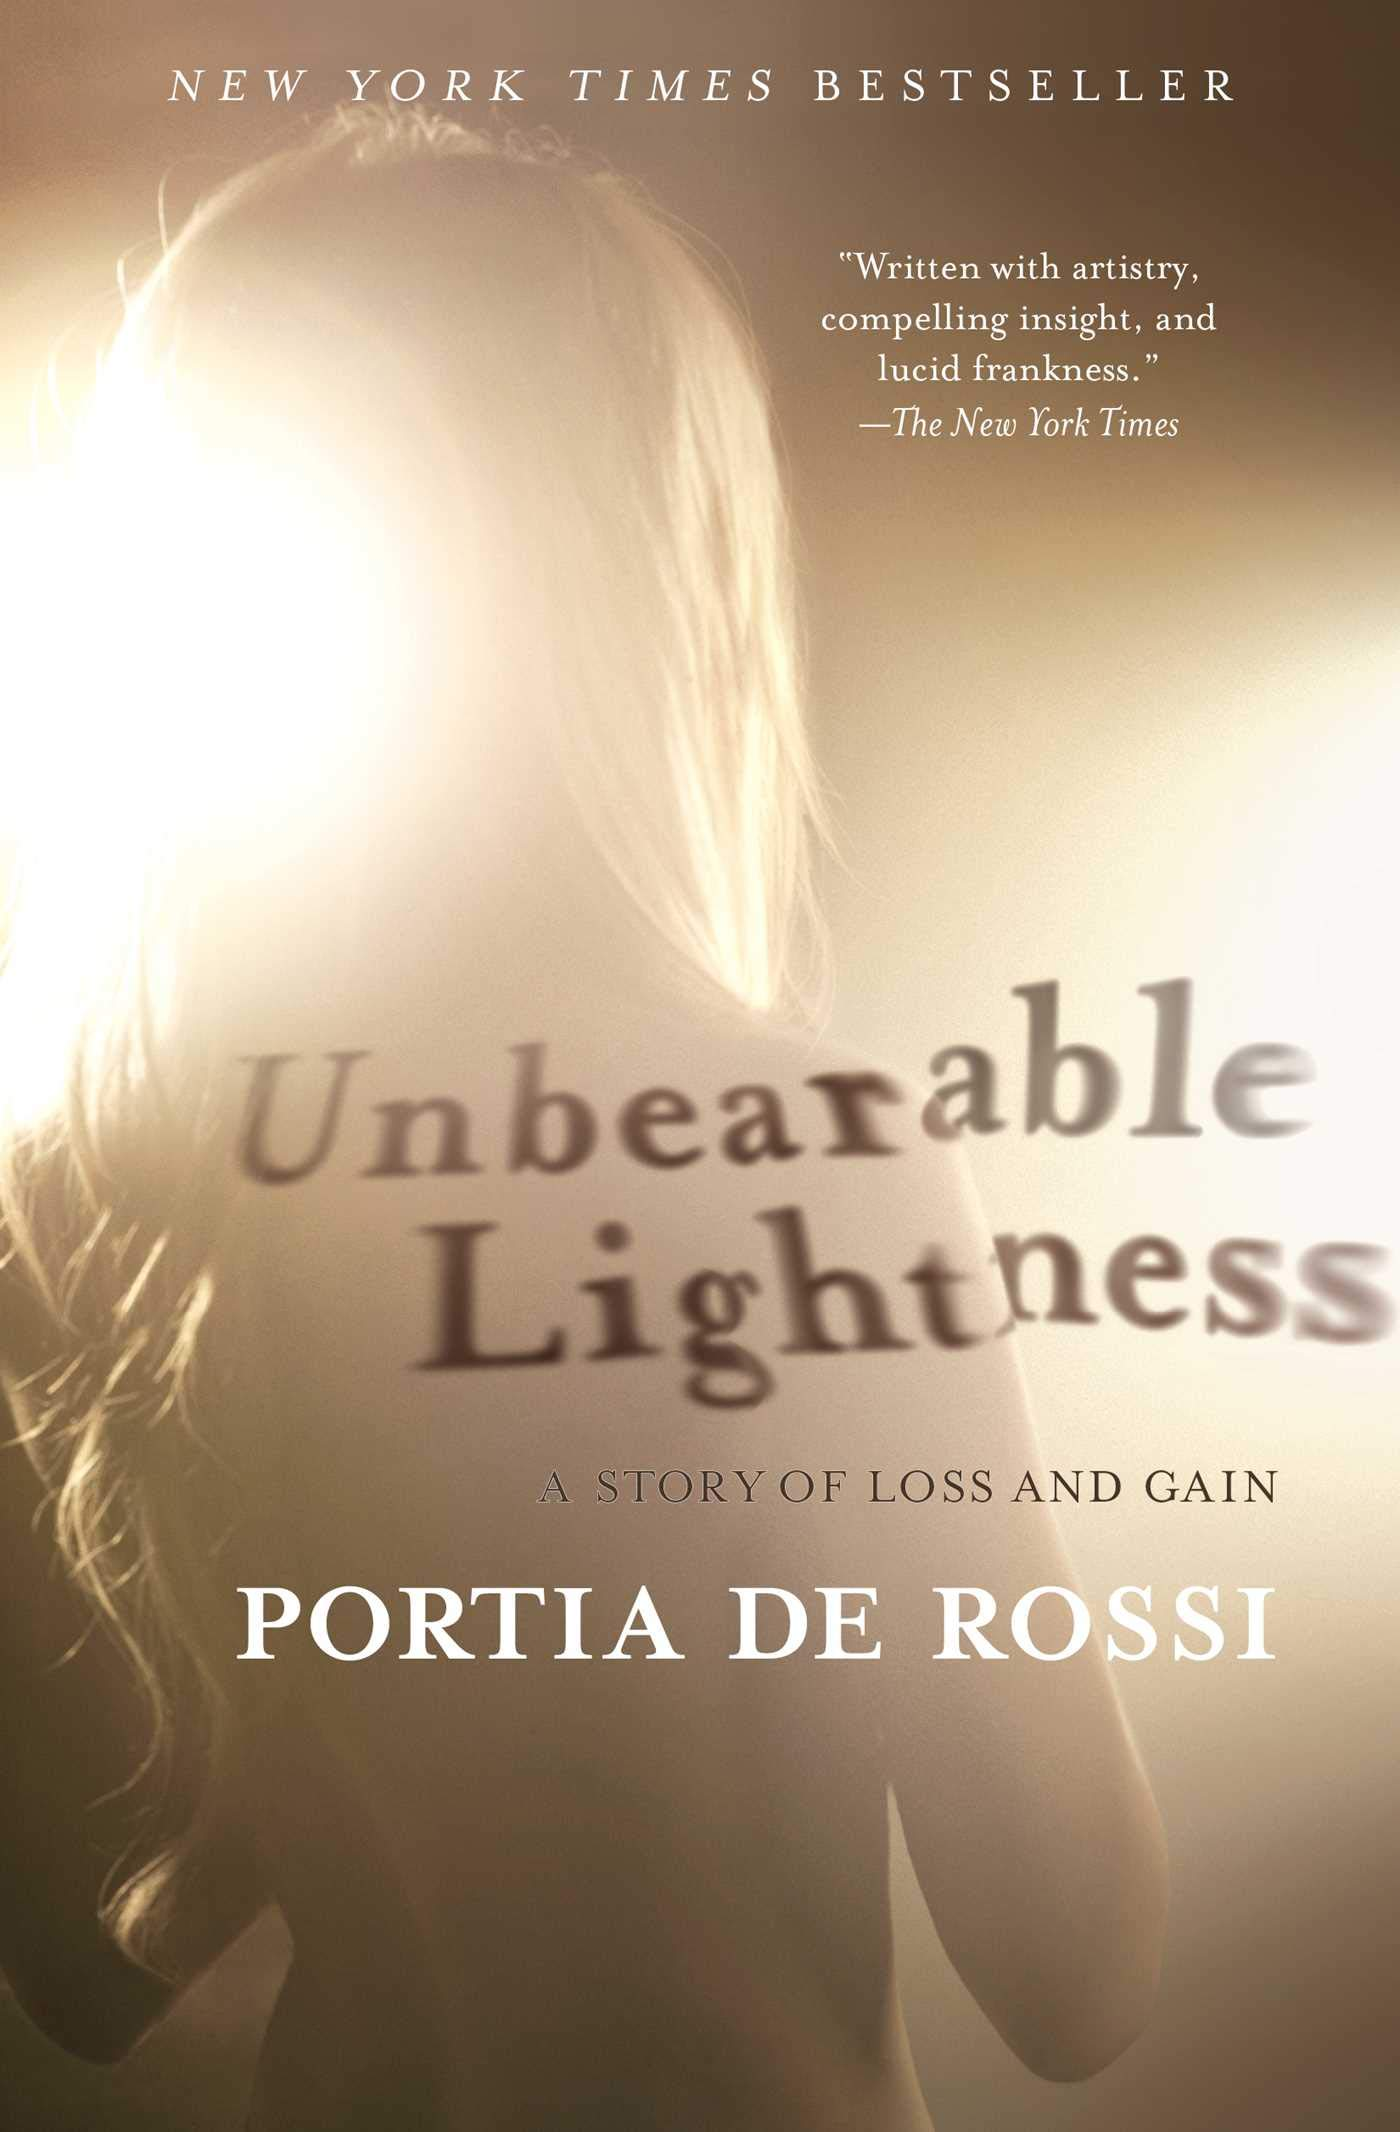 Unbearable Lightness: A Story Of Loss And Gain: Portia De Rossi:  9781439177792: Amazon.com: Books Pictures